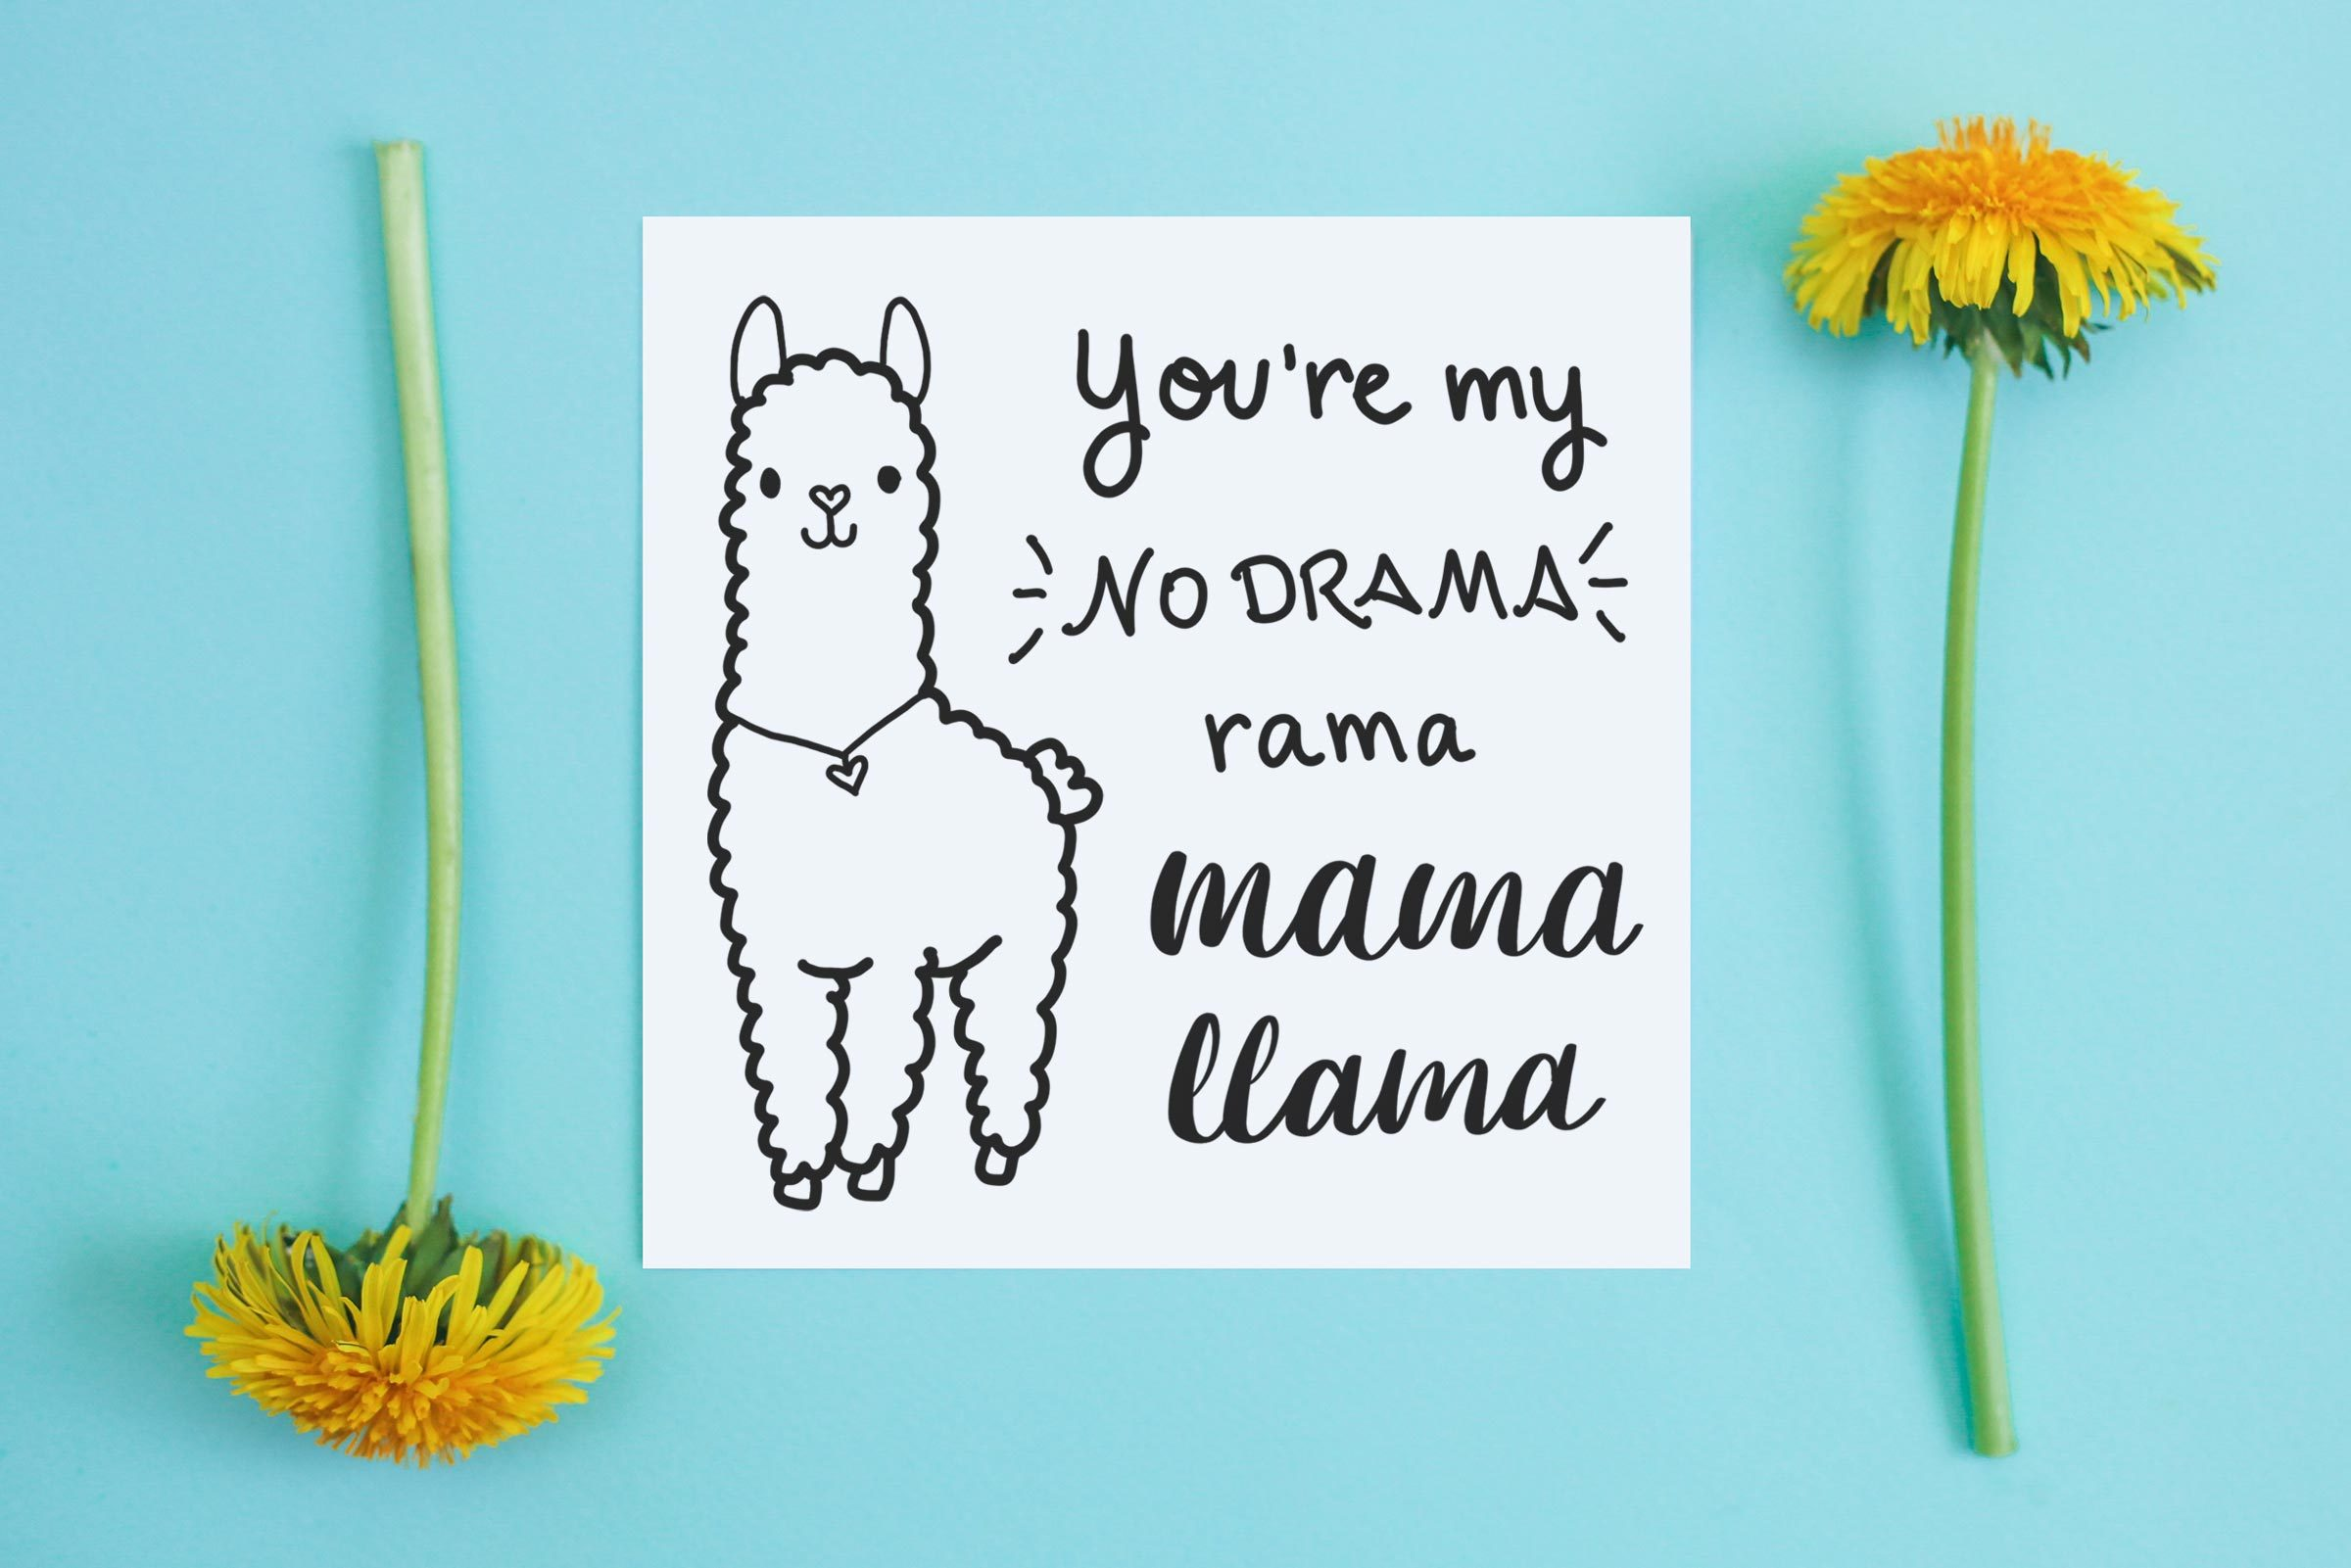 """card and dandelions on blue background. card reads, """"you're my no drama rama mama llama"""""""